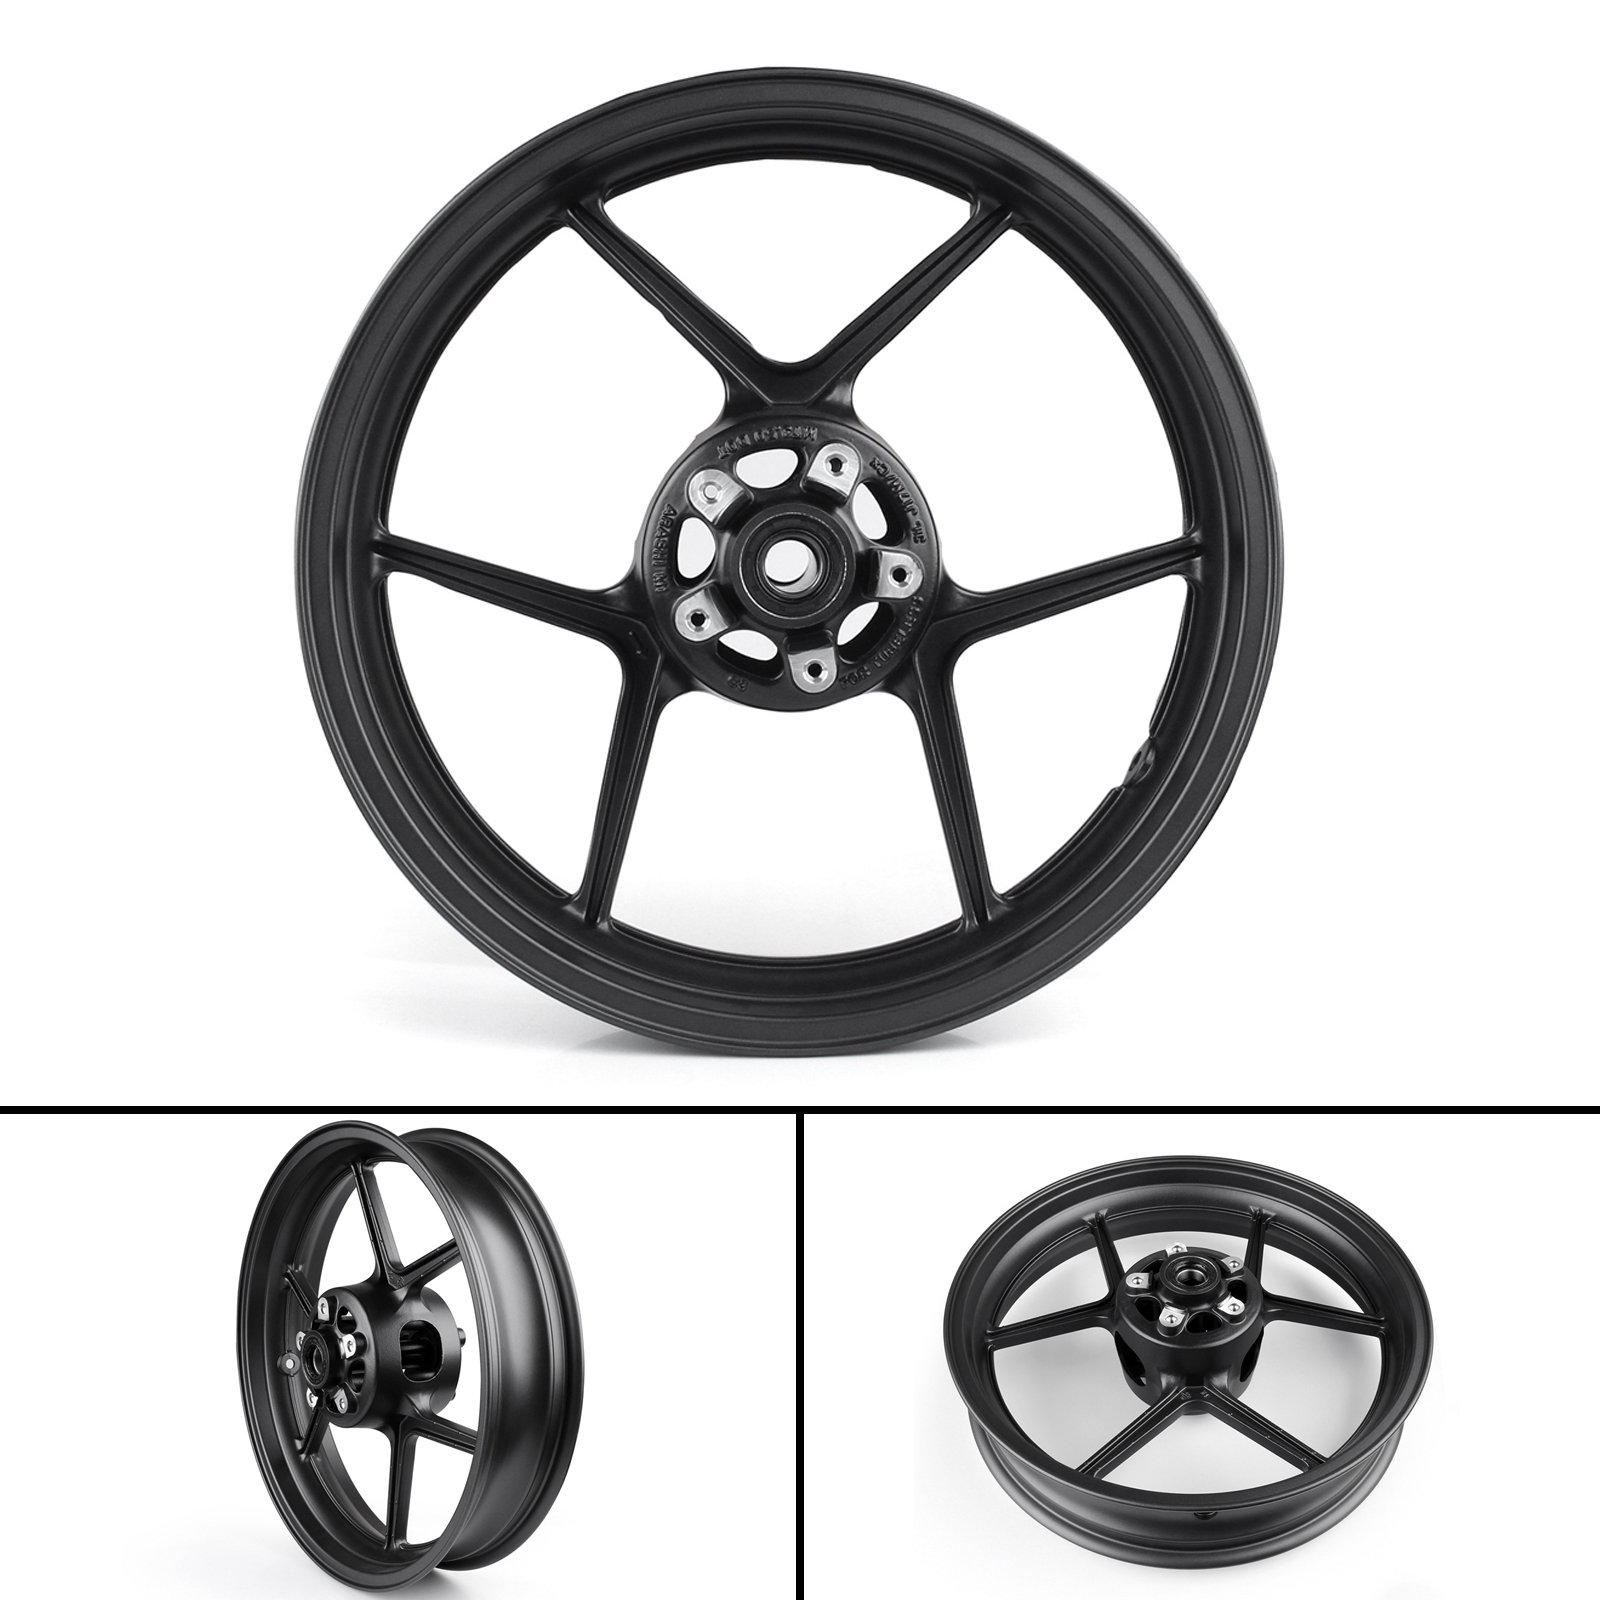 Areyourshop Front Wheel Rim For Kawasaki ZX6R 2005-2012 ZX10R 2006-2010 Black